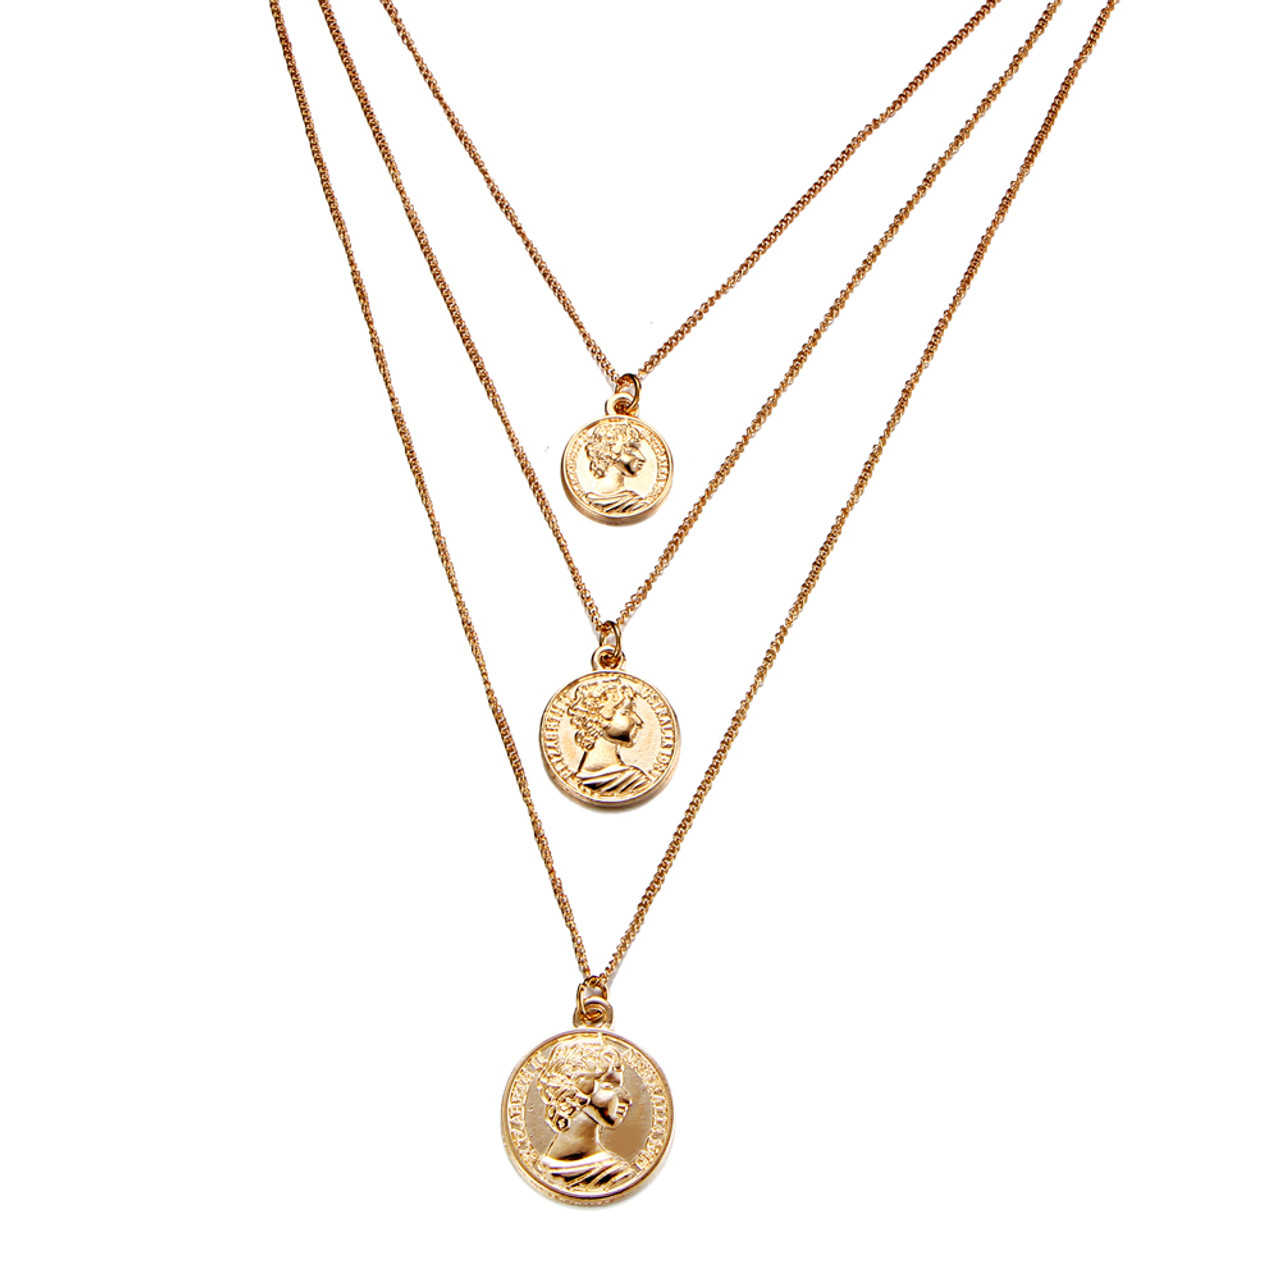 Delicate Triple Chain Necklace For Women Bohemian Vintage Gold Silver Color Coins Pendant Necklace Fashion Jewelry